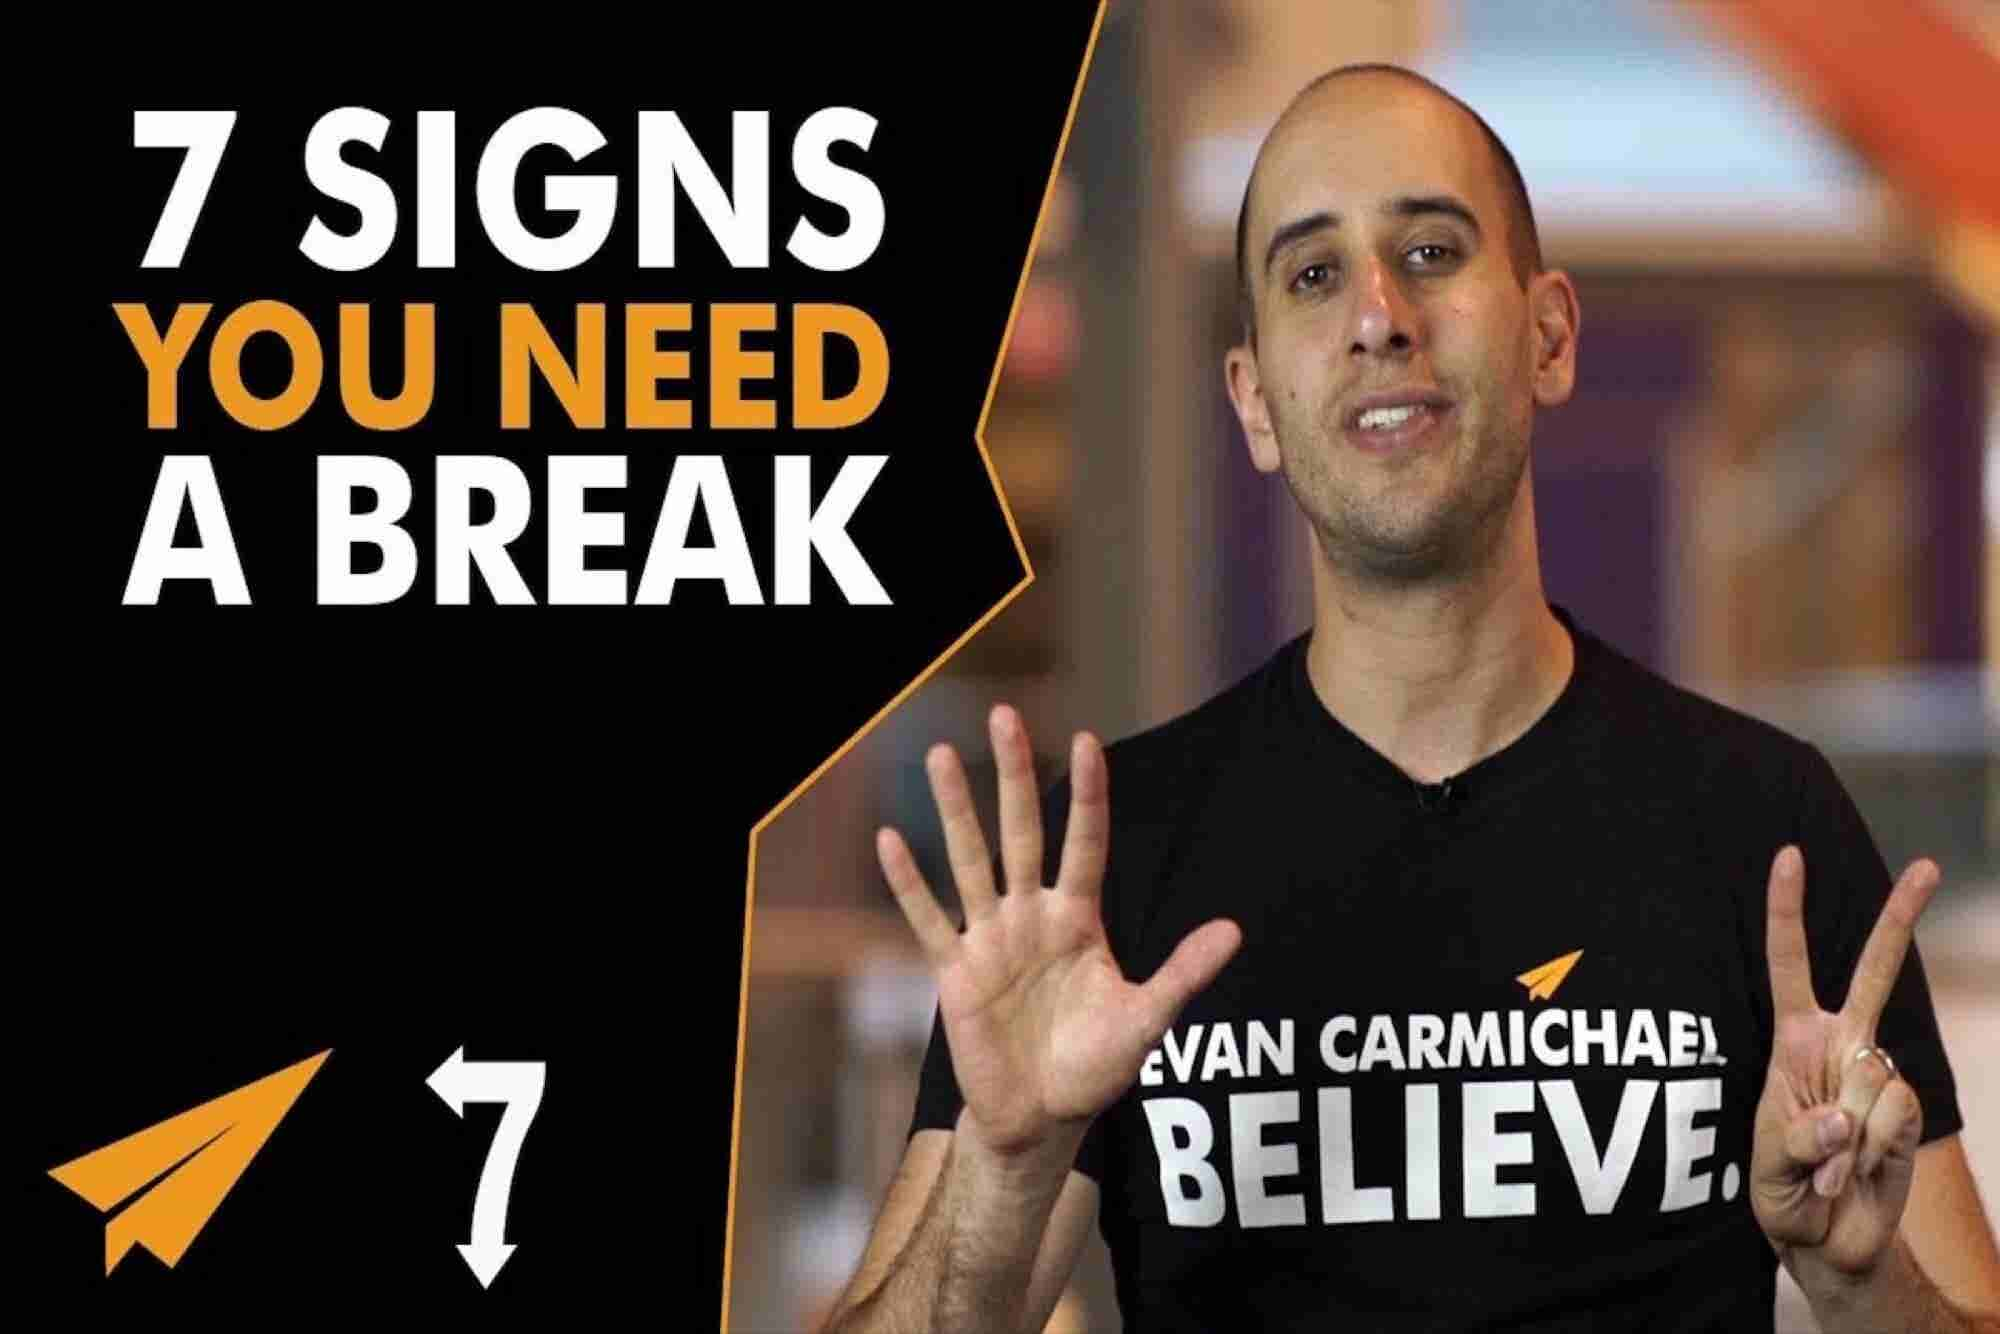 7 Signs You're Overworked and Need a Break